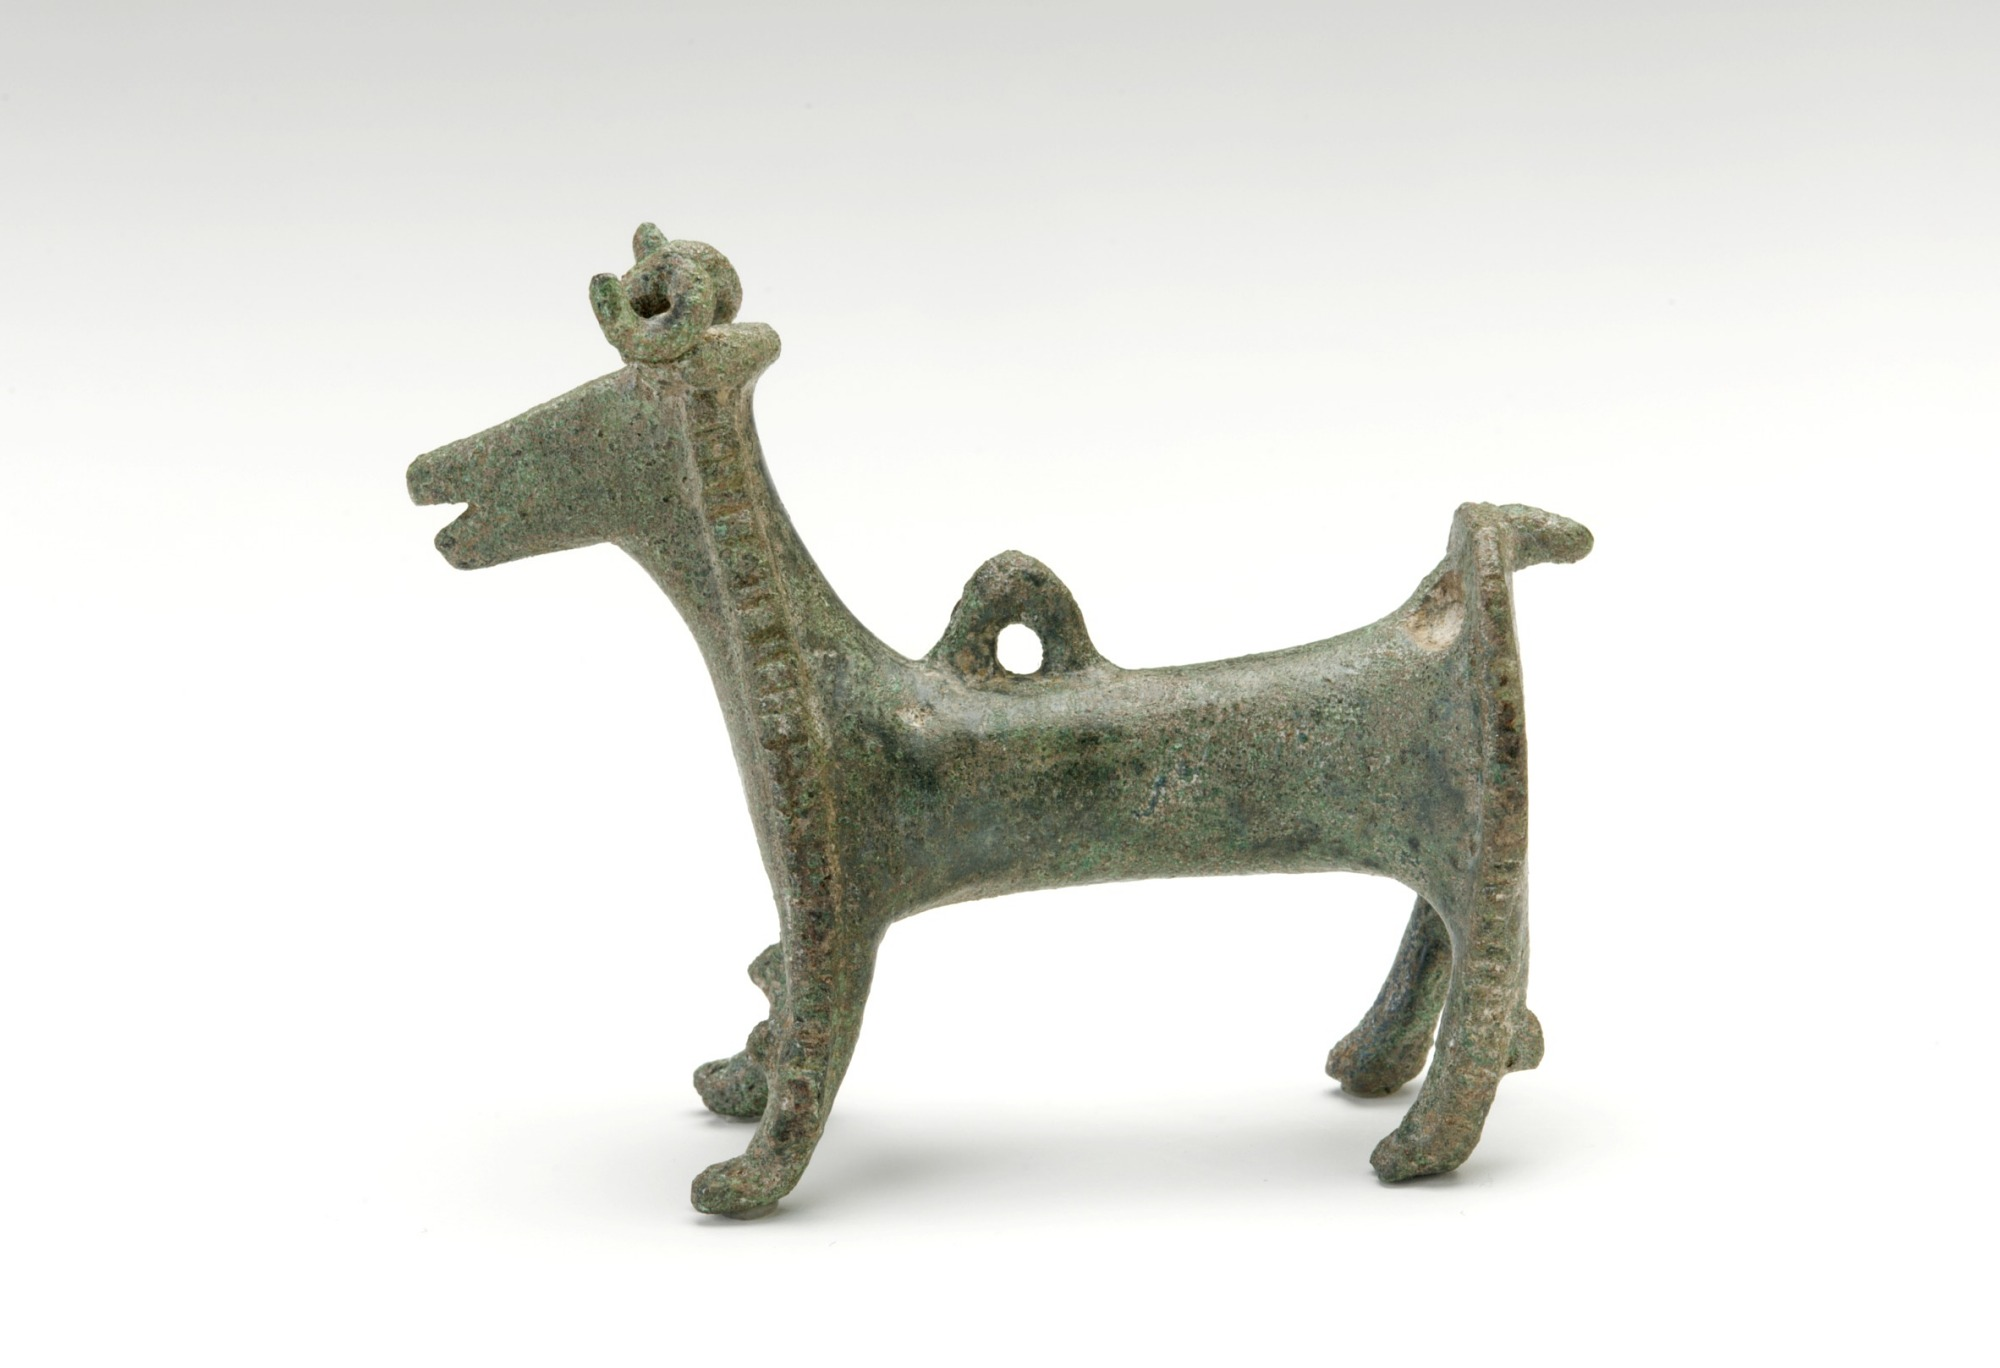 Pendant in the shape of a goat